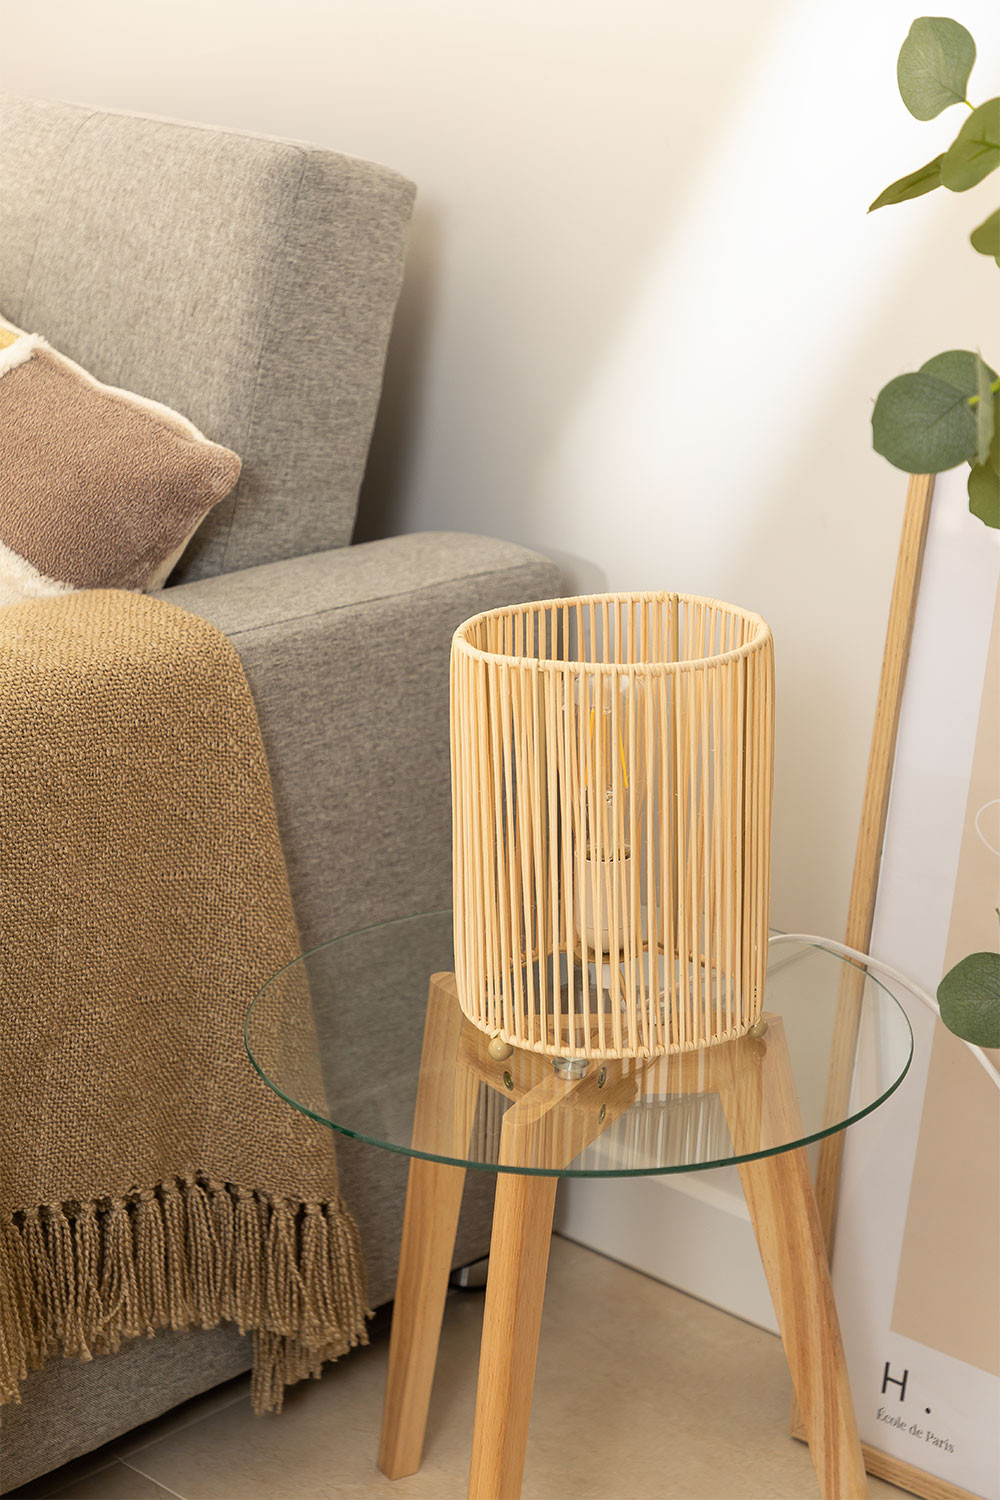 Bamboo Table Lamp Khumo, gallery image 1